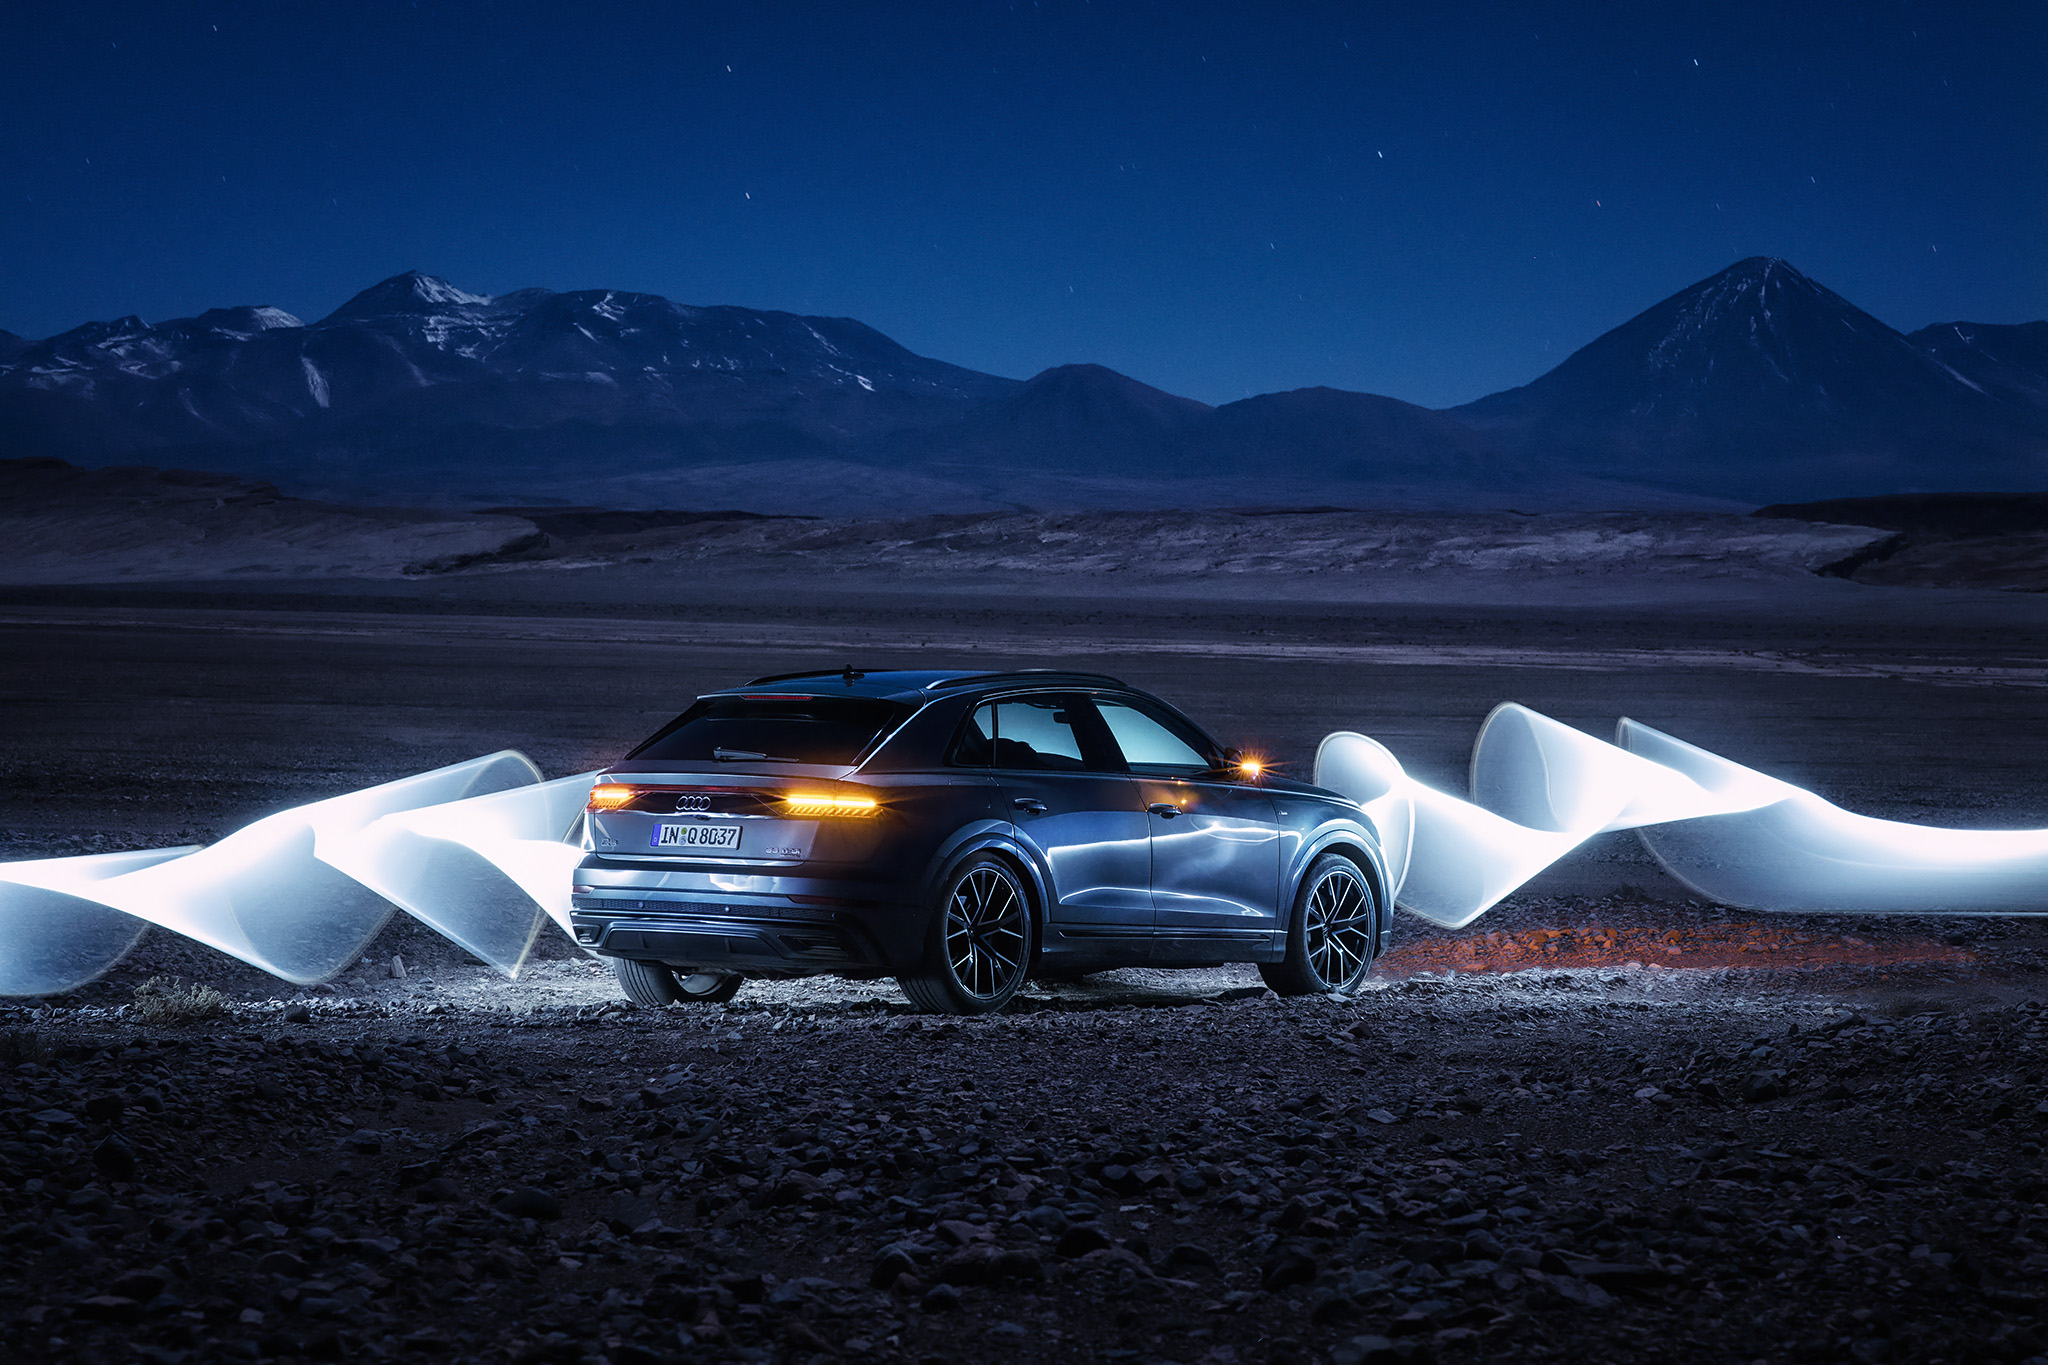 Audi Q8 + light-painting in Atacama, Chile